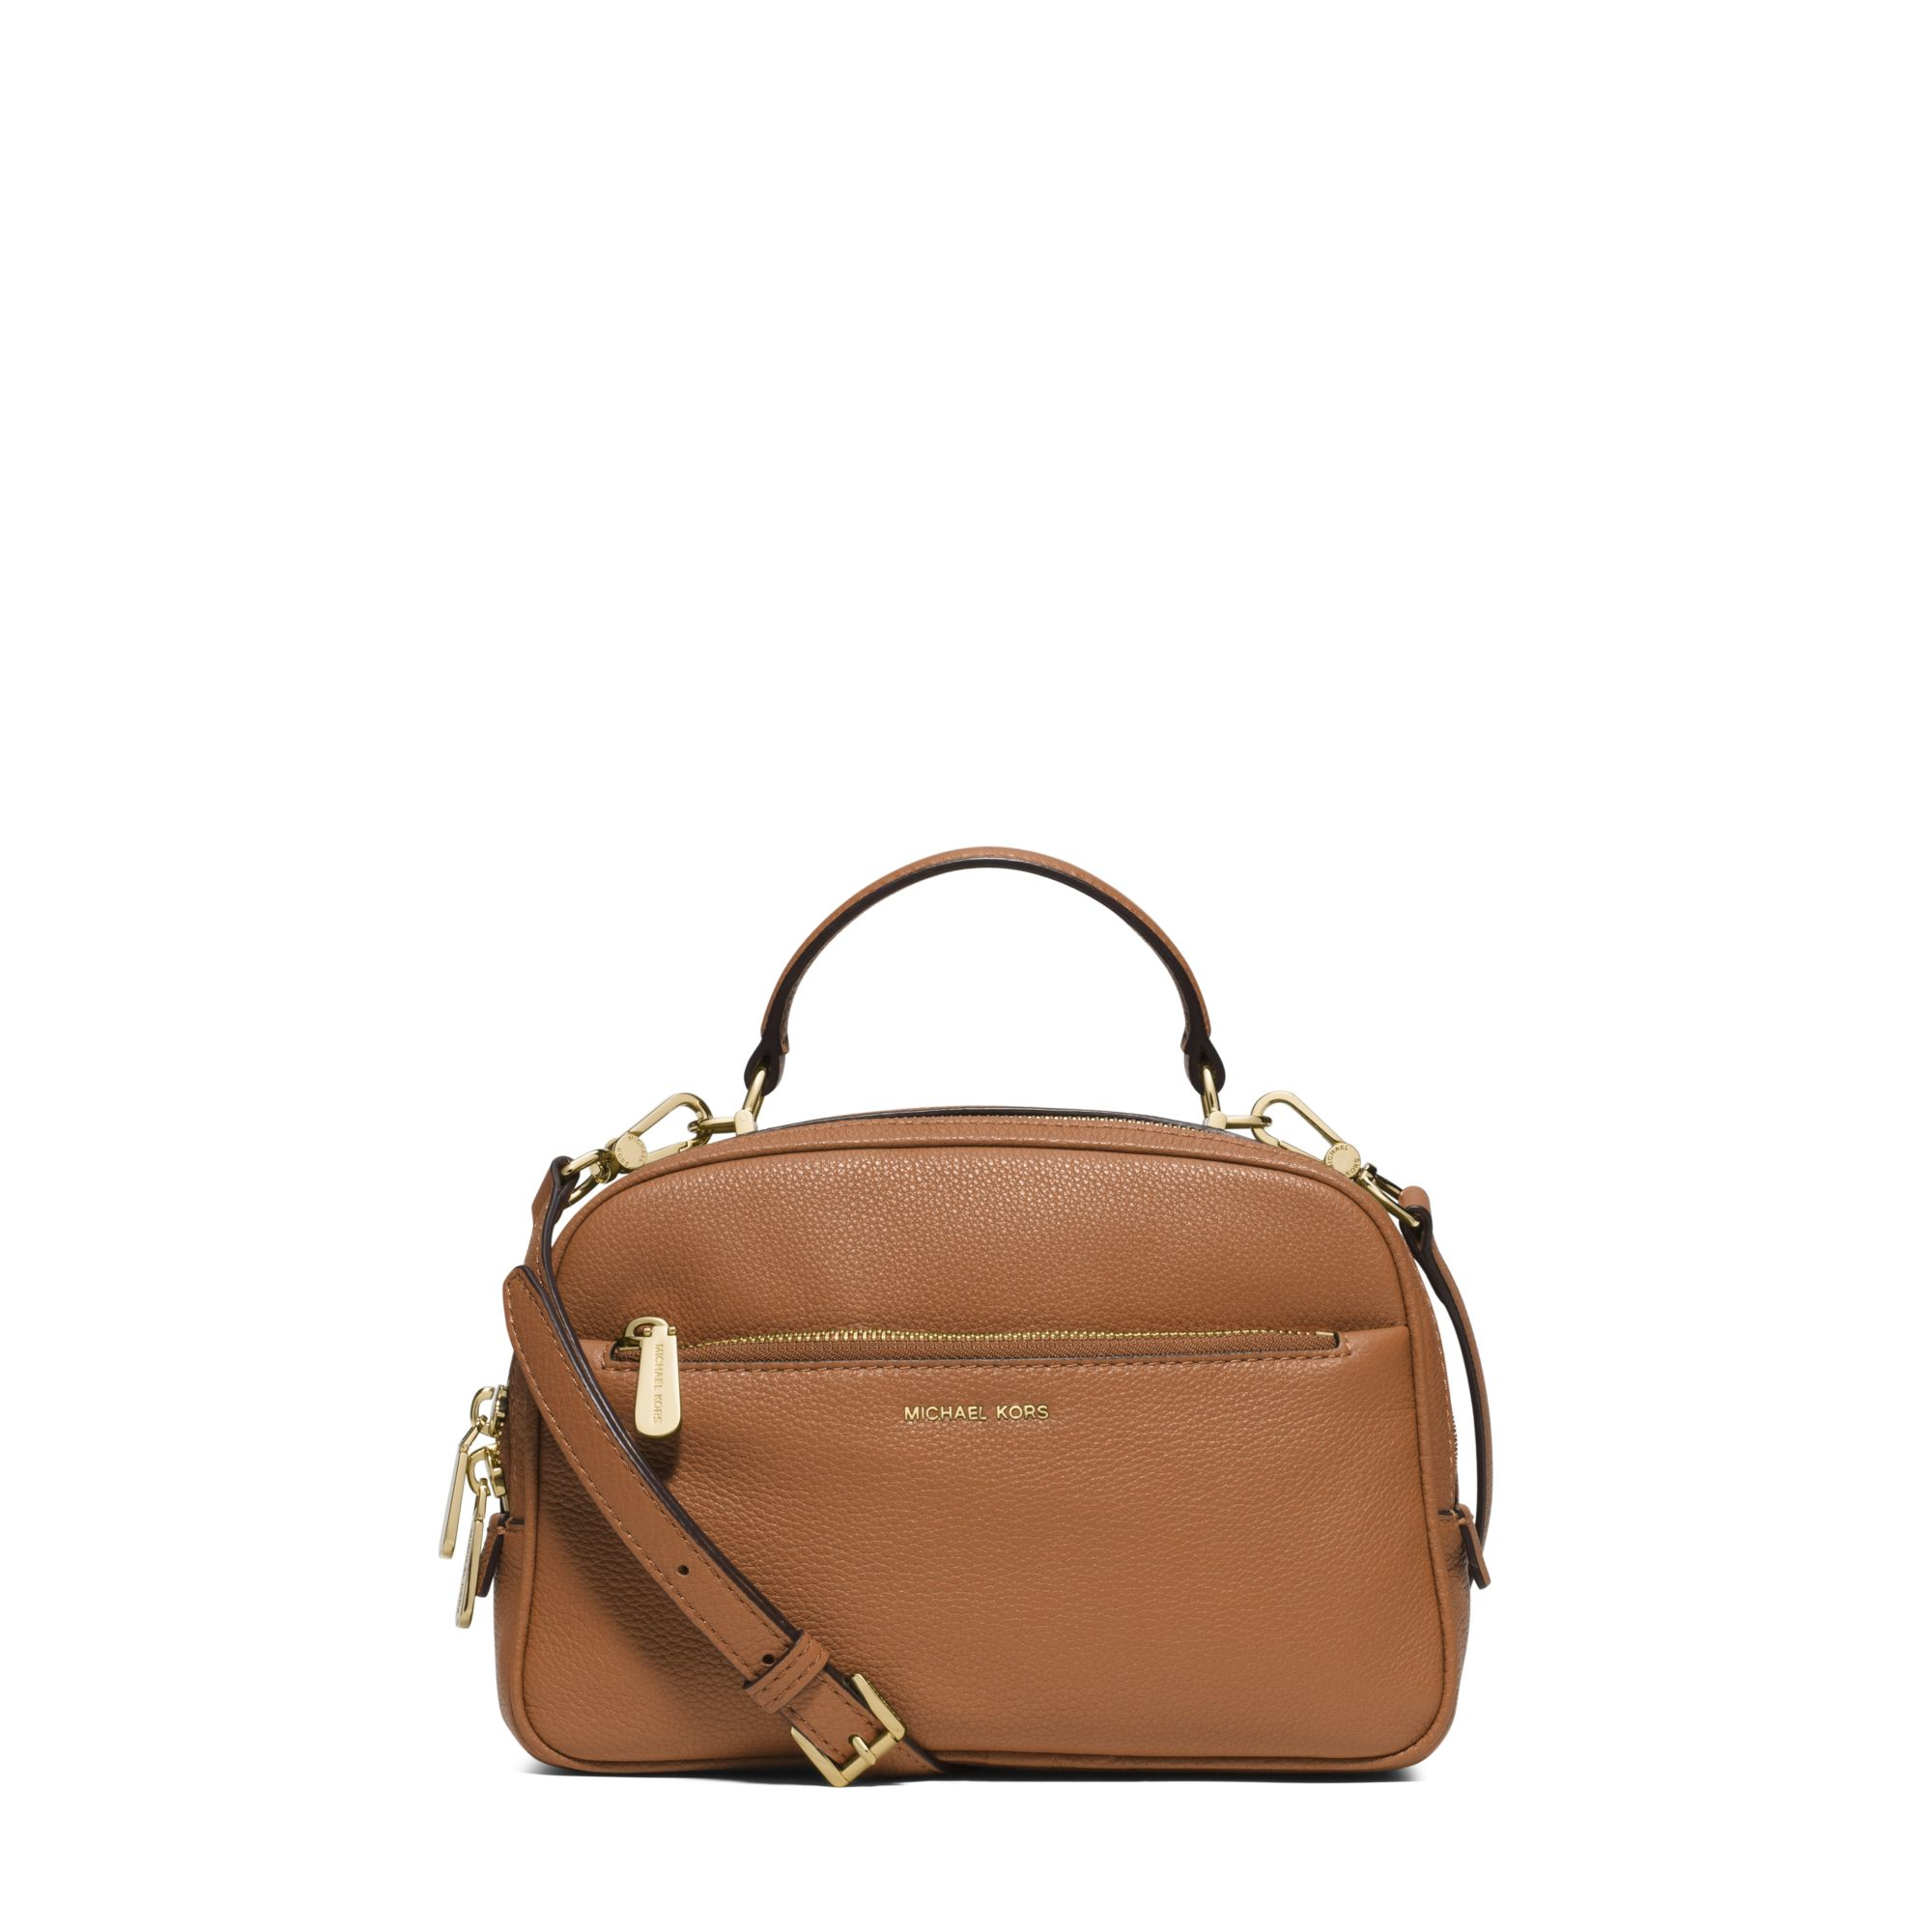 be0ca025e0ac ... Michael kors Luka Small Leather Satchel in Brown Lyst ...